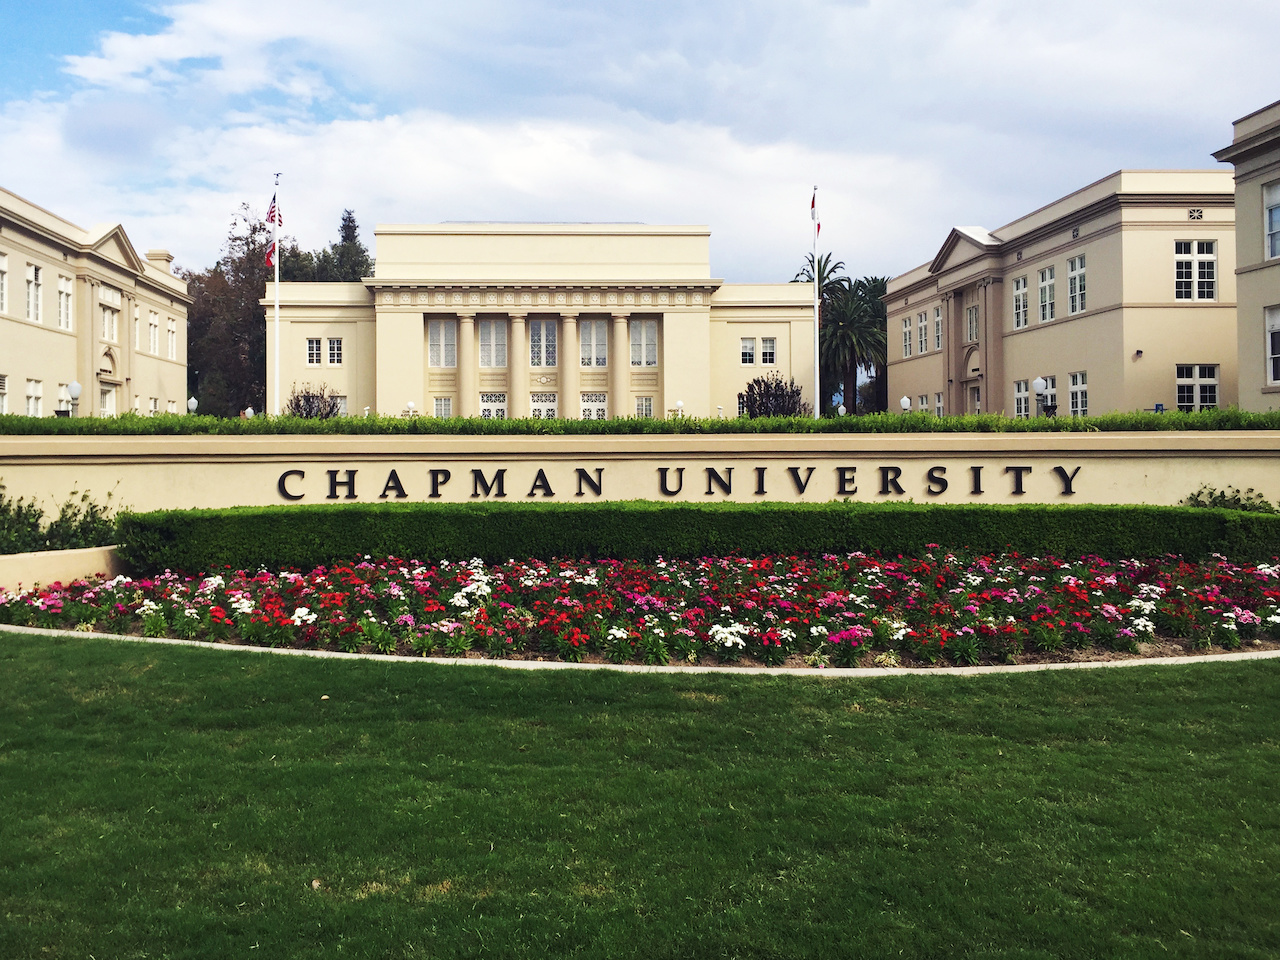 If the quad at Chapman University looks familiar, that's because it was a primary setting in the 1994 Denzel Washington Film Crimson Tide.